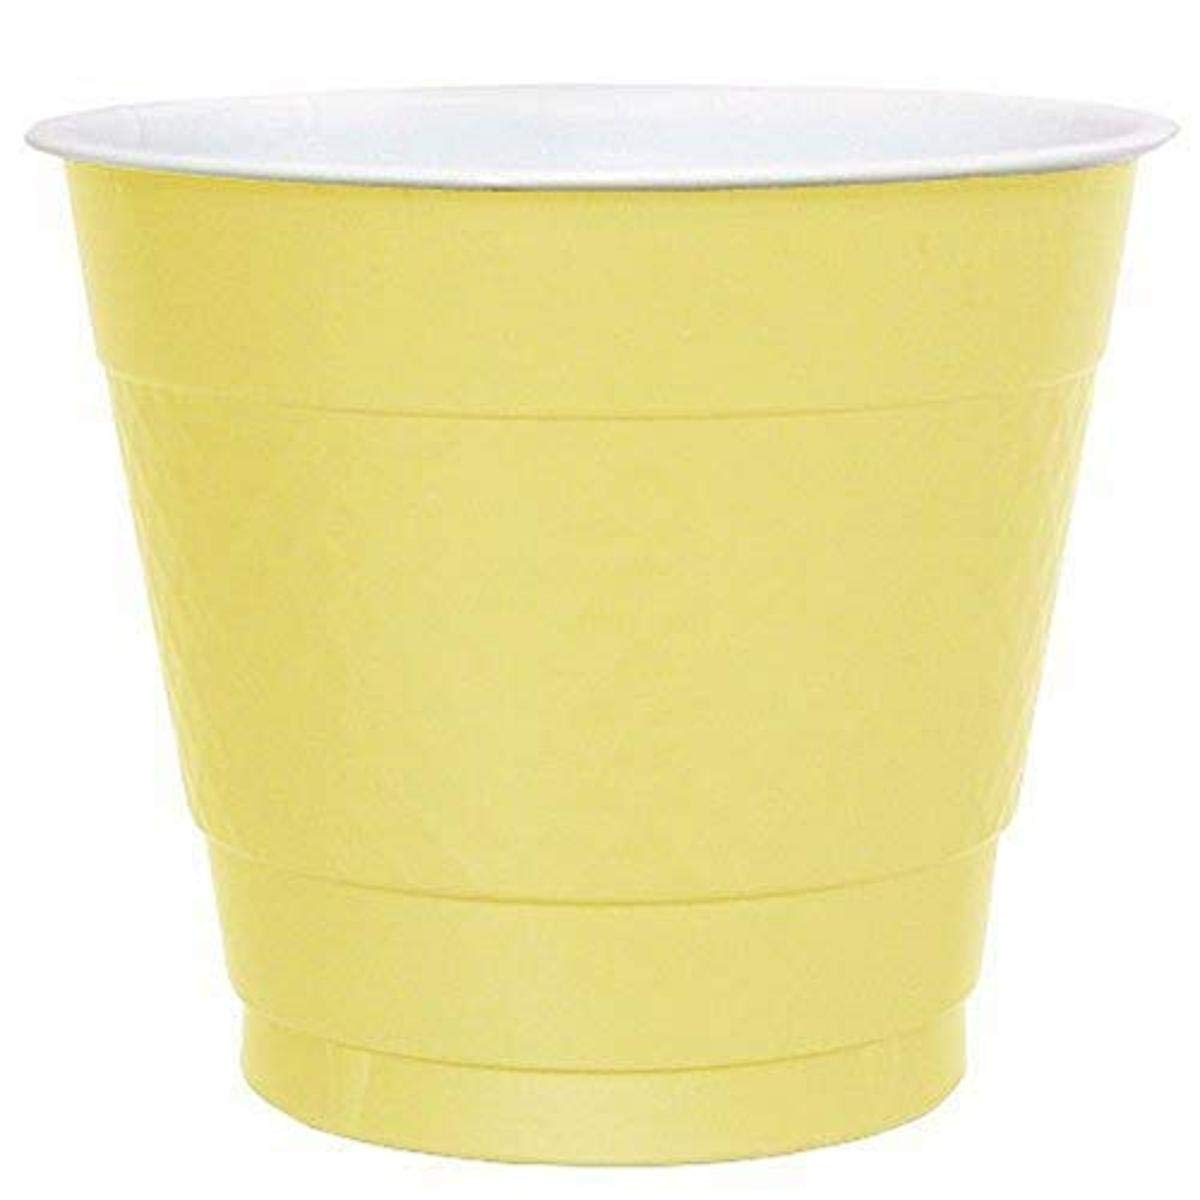 Hanna K. Signature Collection 9 oz   Yellow   Pack of 50 Party Plastic Cup, 9-Ounce